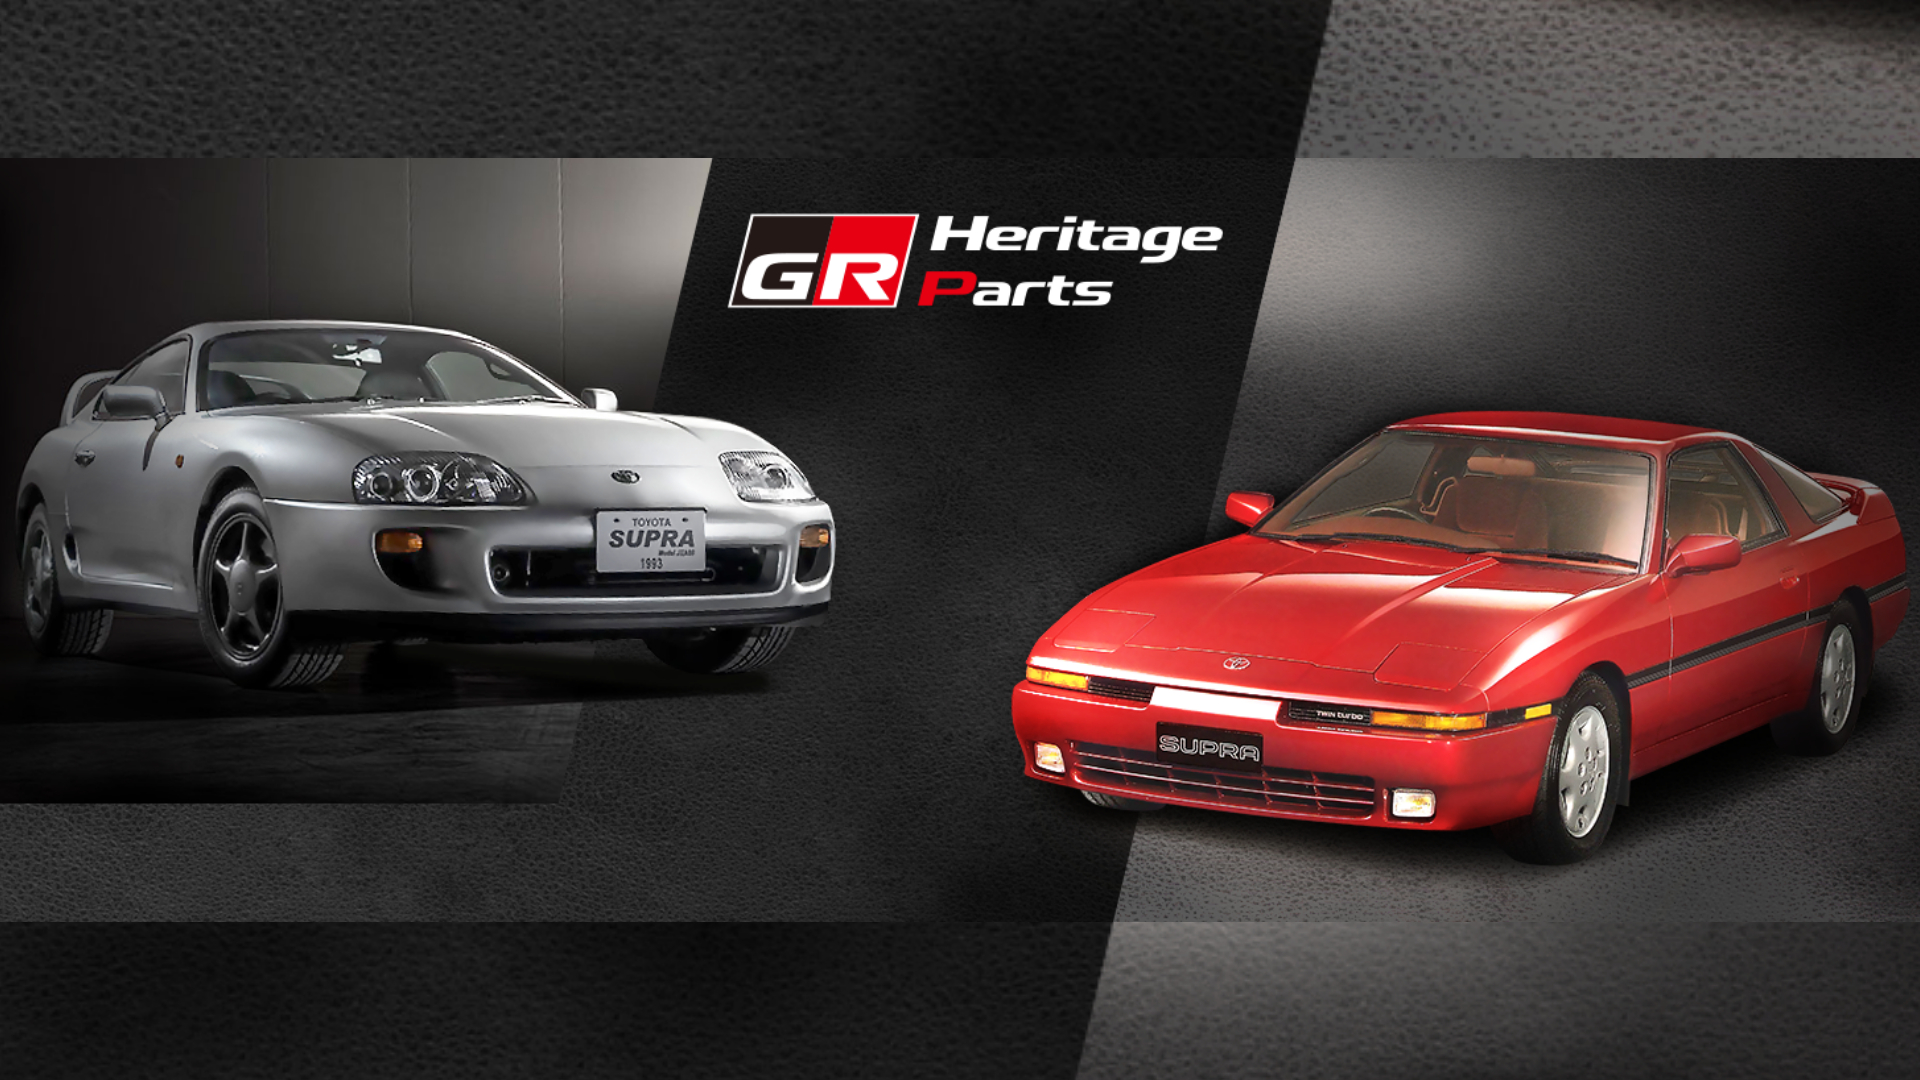 Toyota GR Heritage reproducing Supra parts